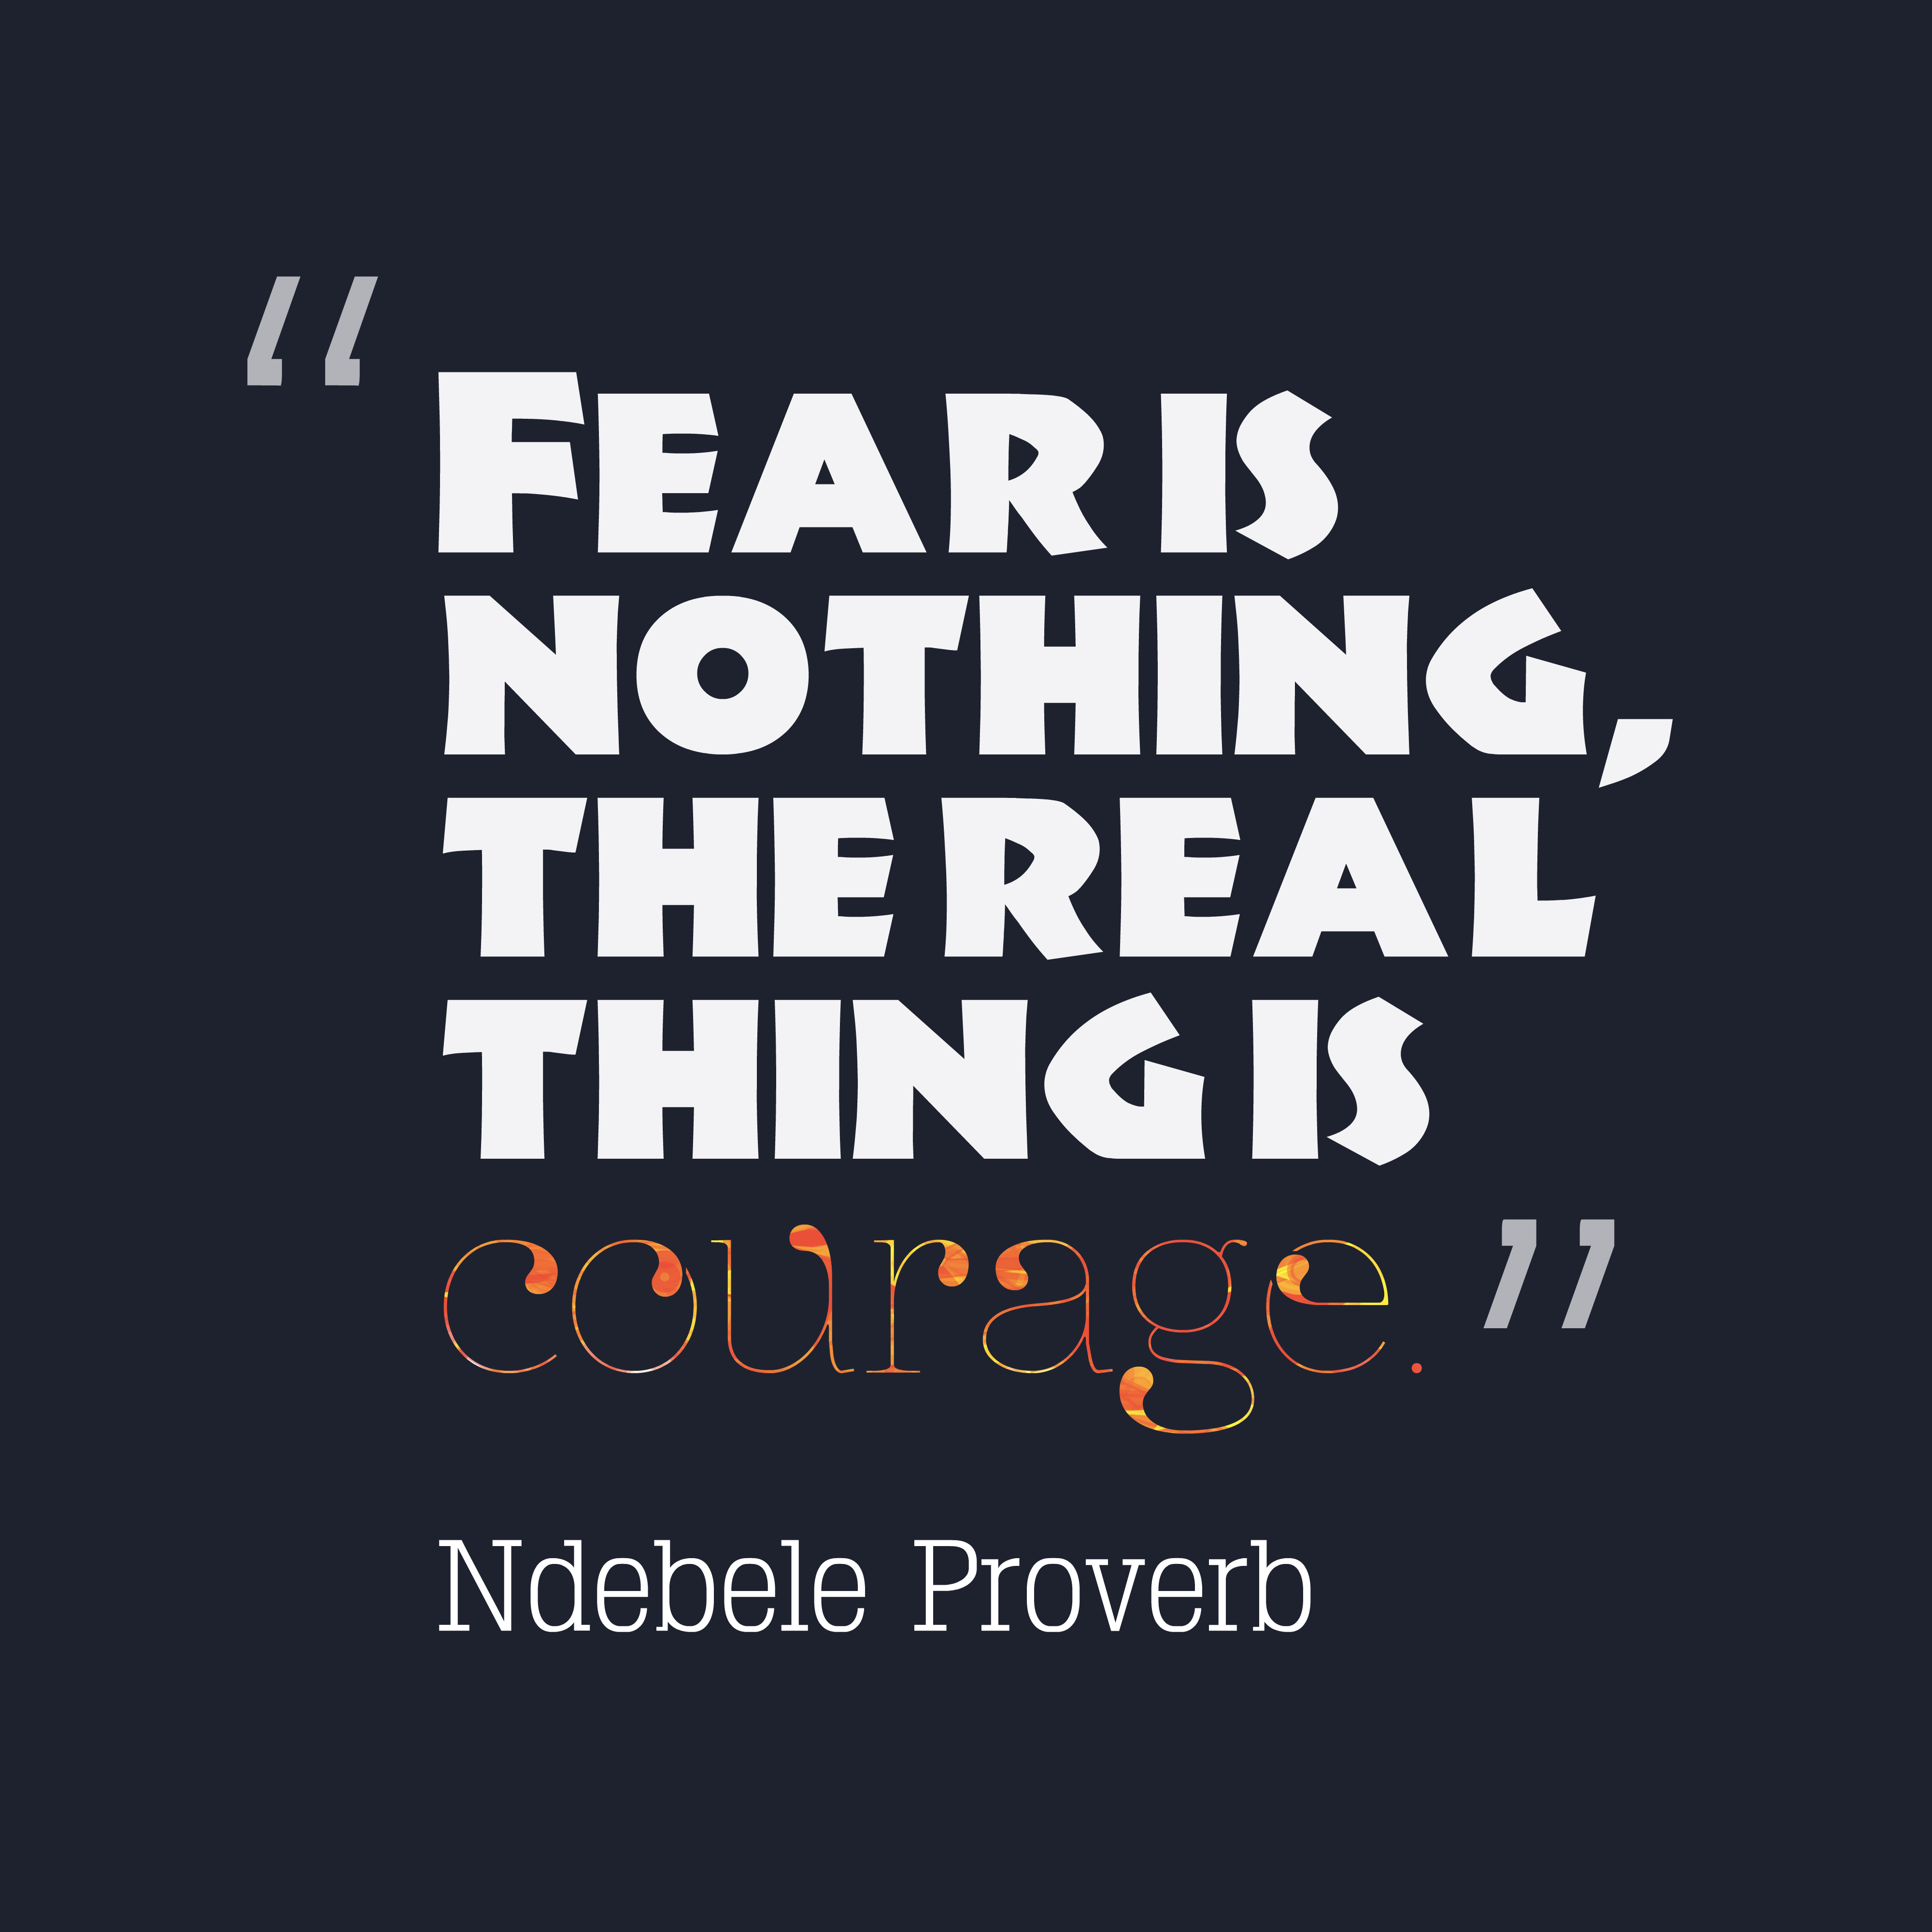 Quotes image of Fear is nothing, the real thing is courage.